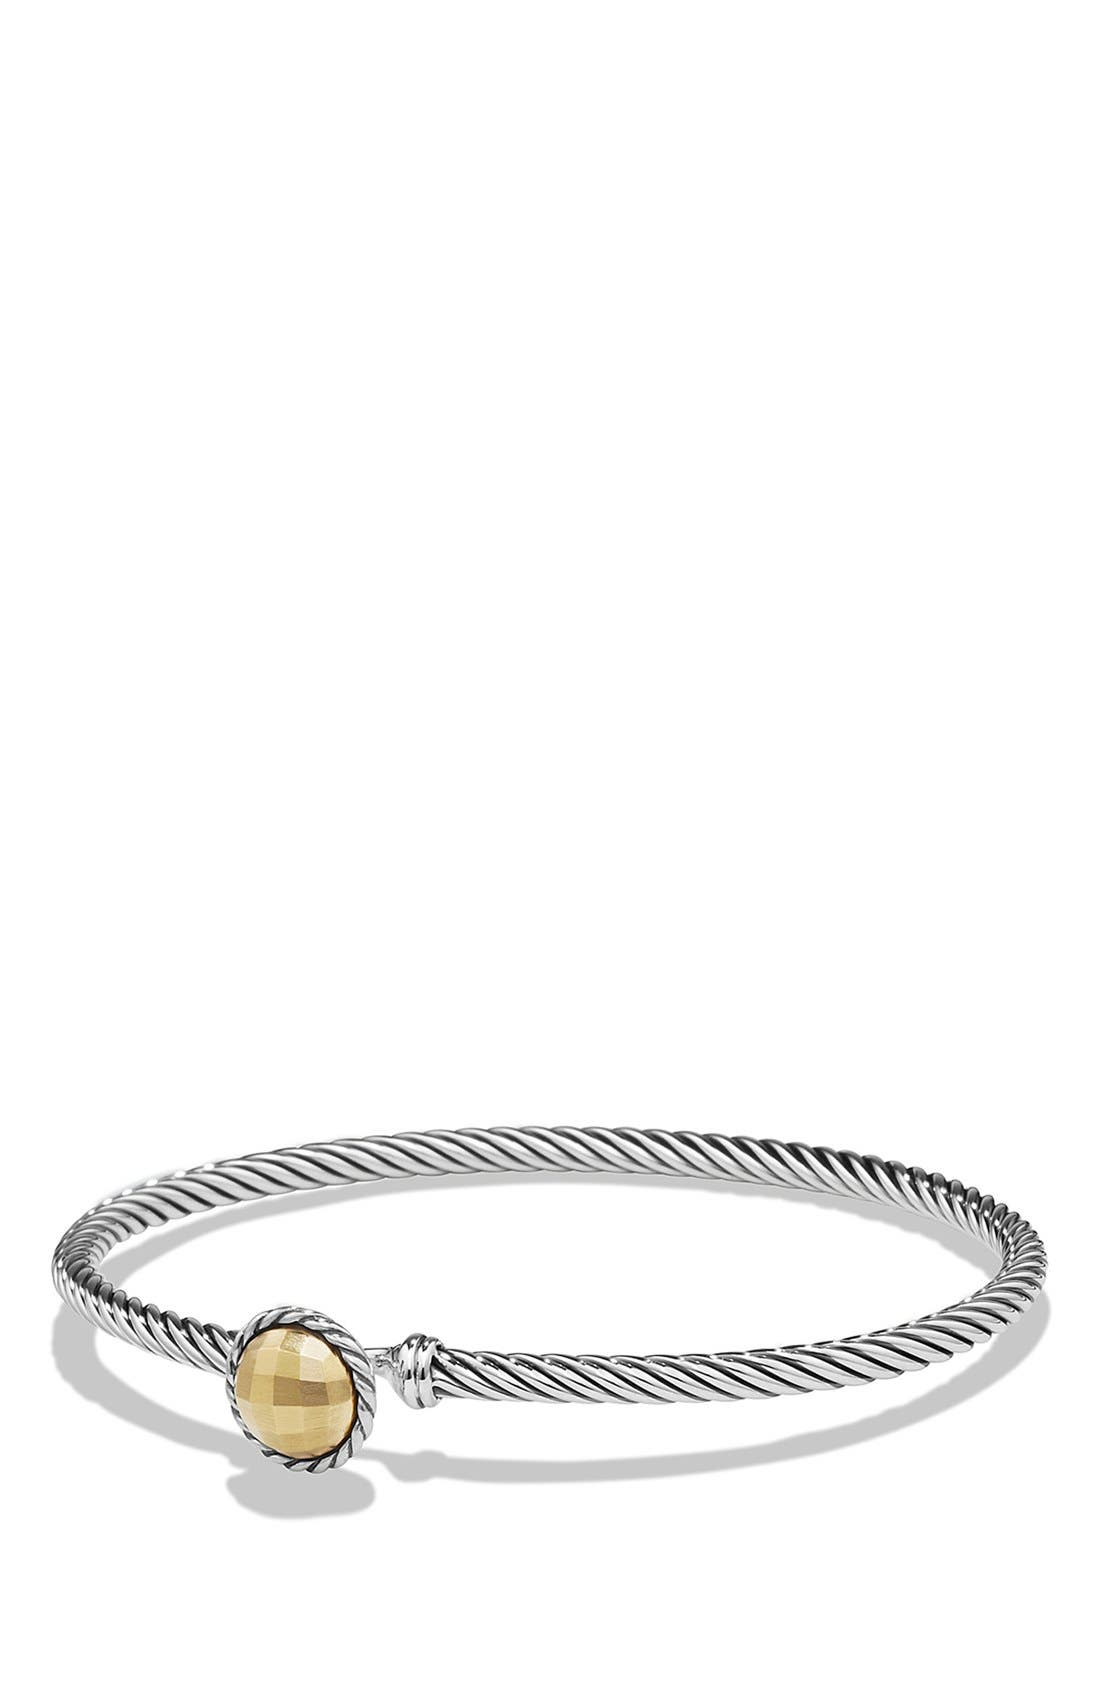 Main Image - David Yurman'Châtelaine'Bracelet with Gold Dome and 18KGold